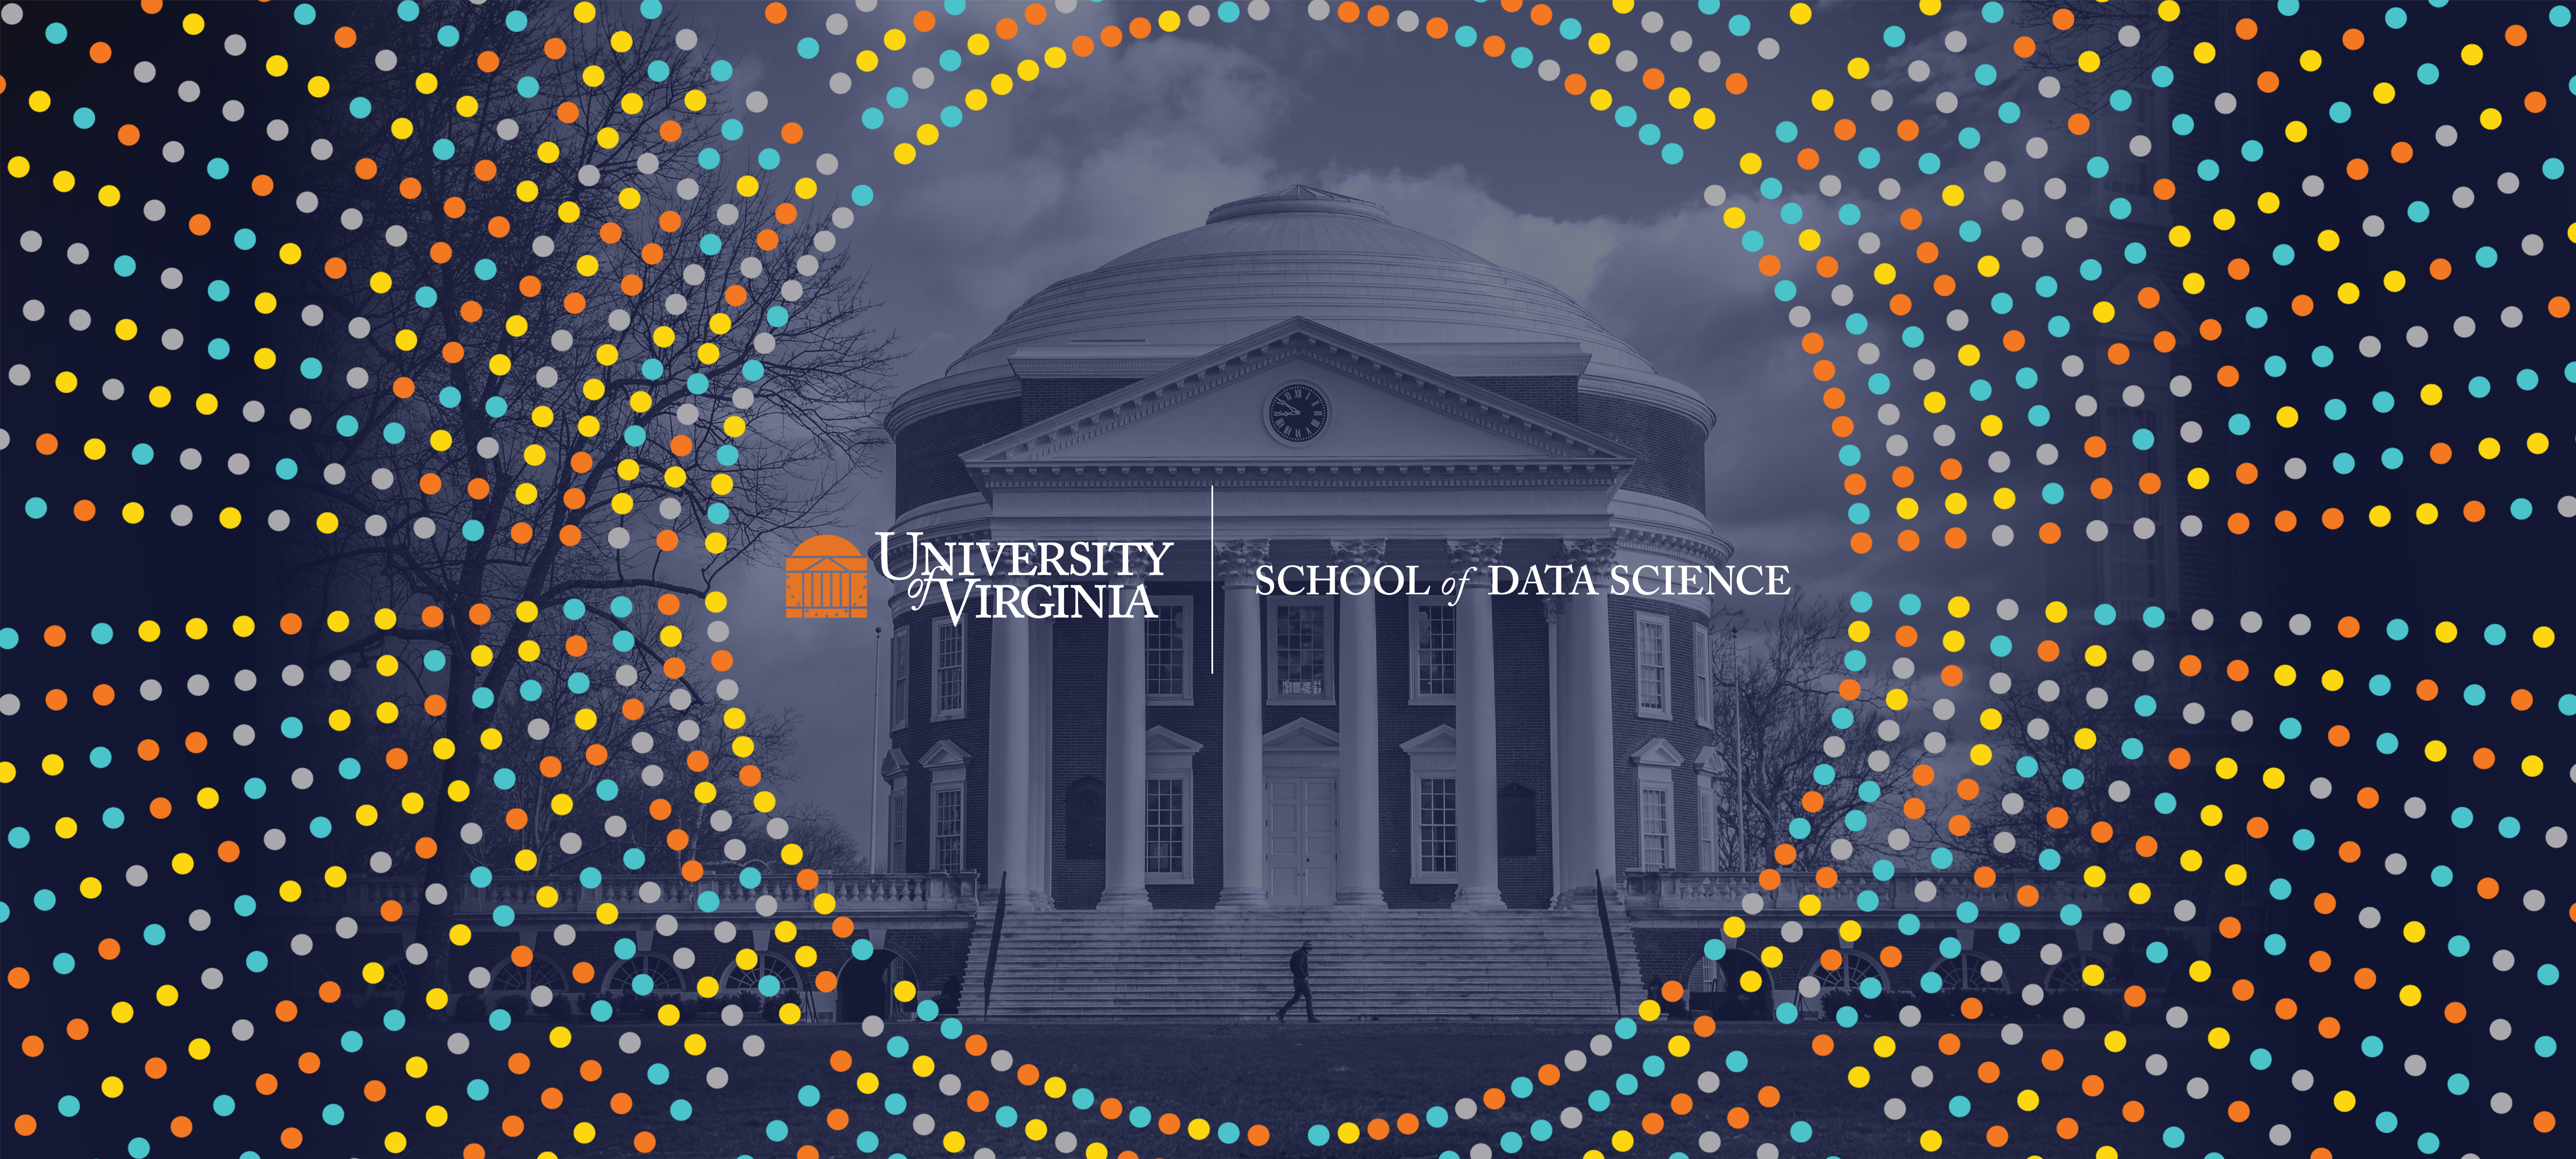 UVA Data Science logo surrounded by a multicolored, circular data burst with the Rotunda building in the back ground with a blue tone treatment.